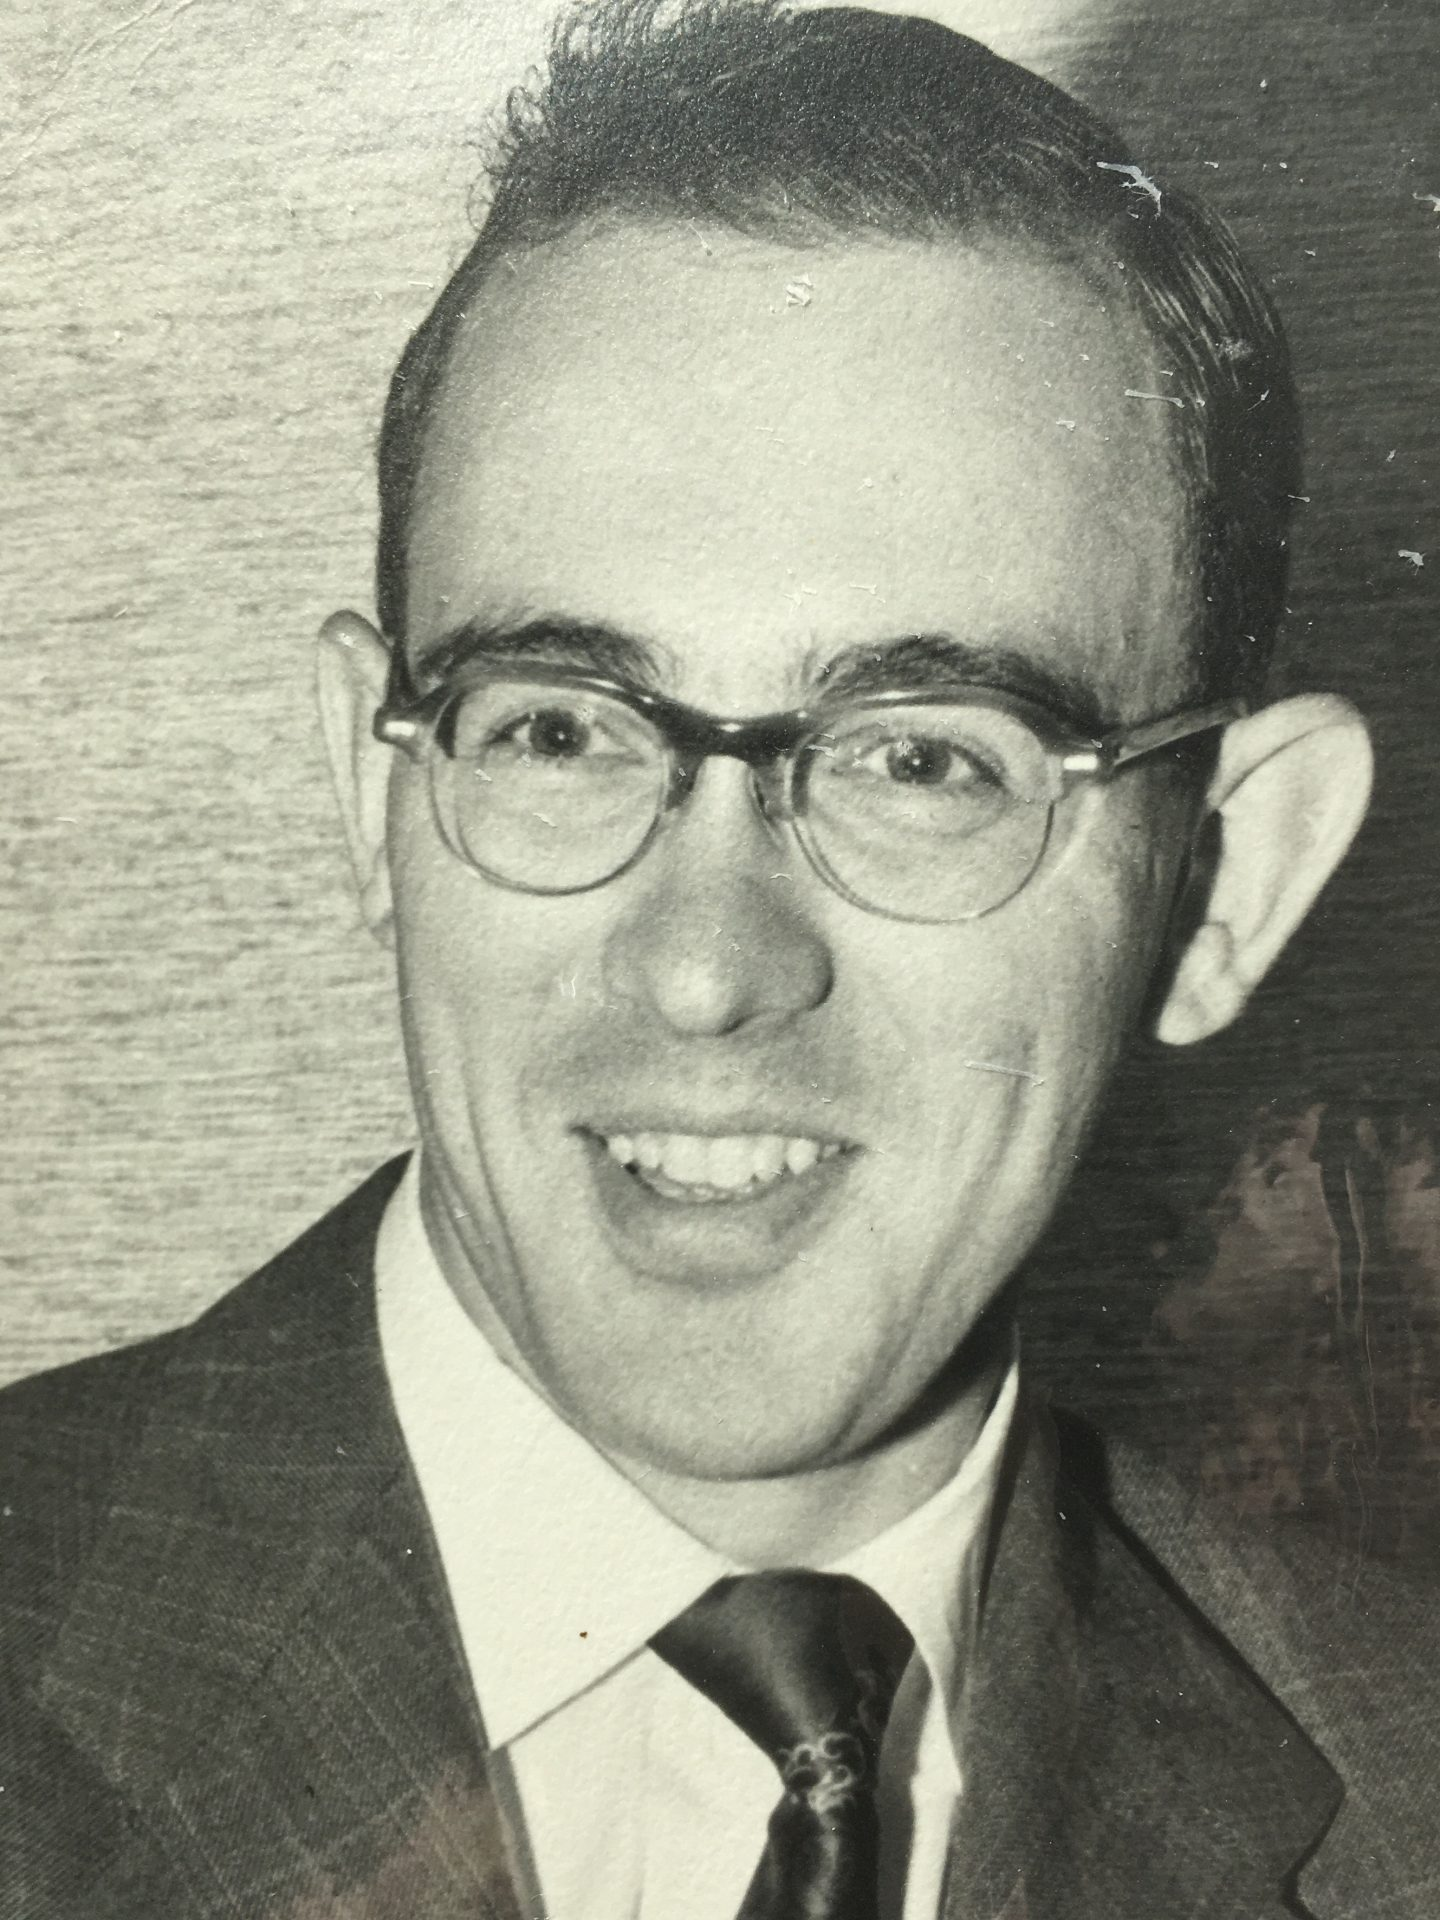 Dick as a young lawyer in the 1950s